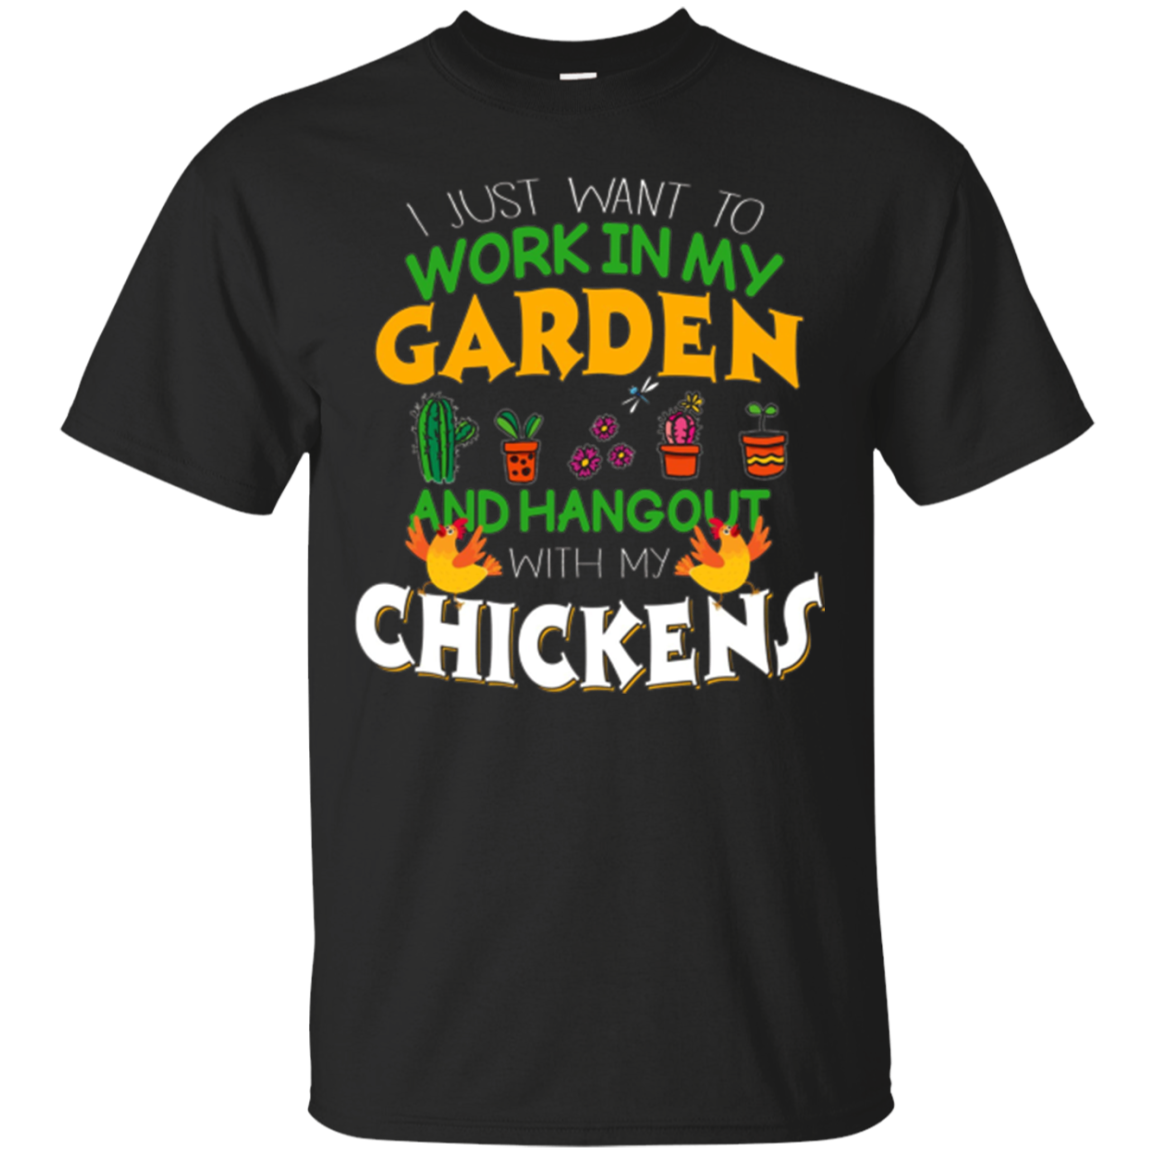 Work In My Garden Hangout With My Chickens T-shirt Gardening